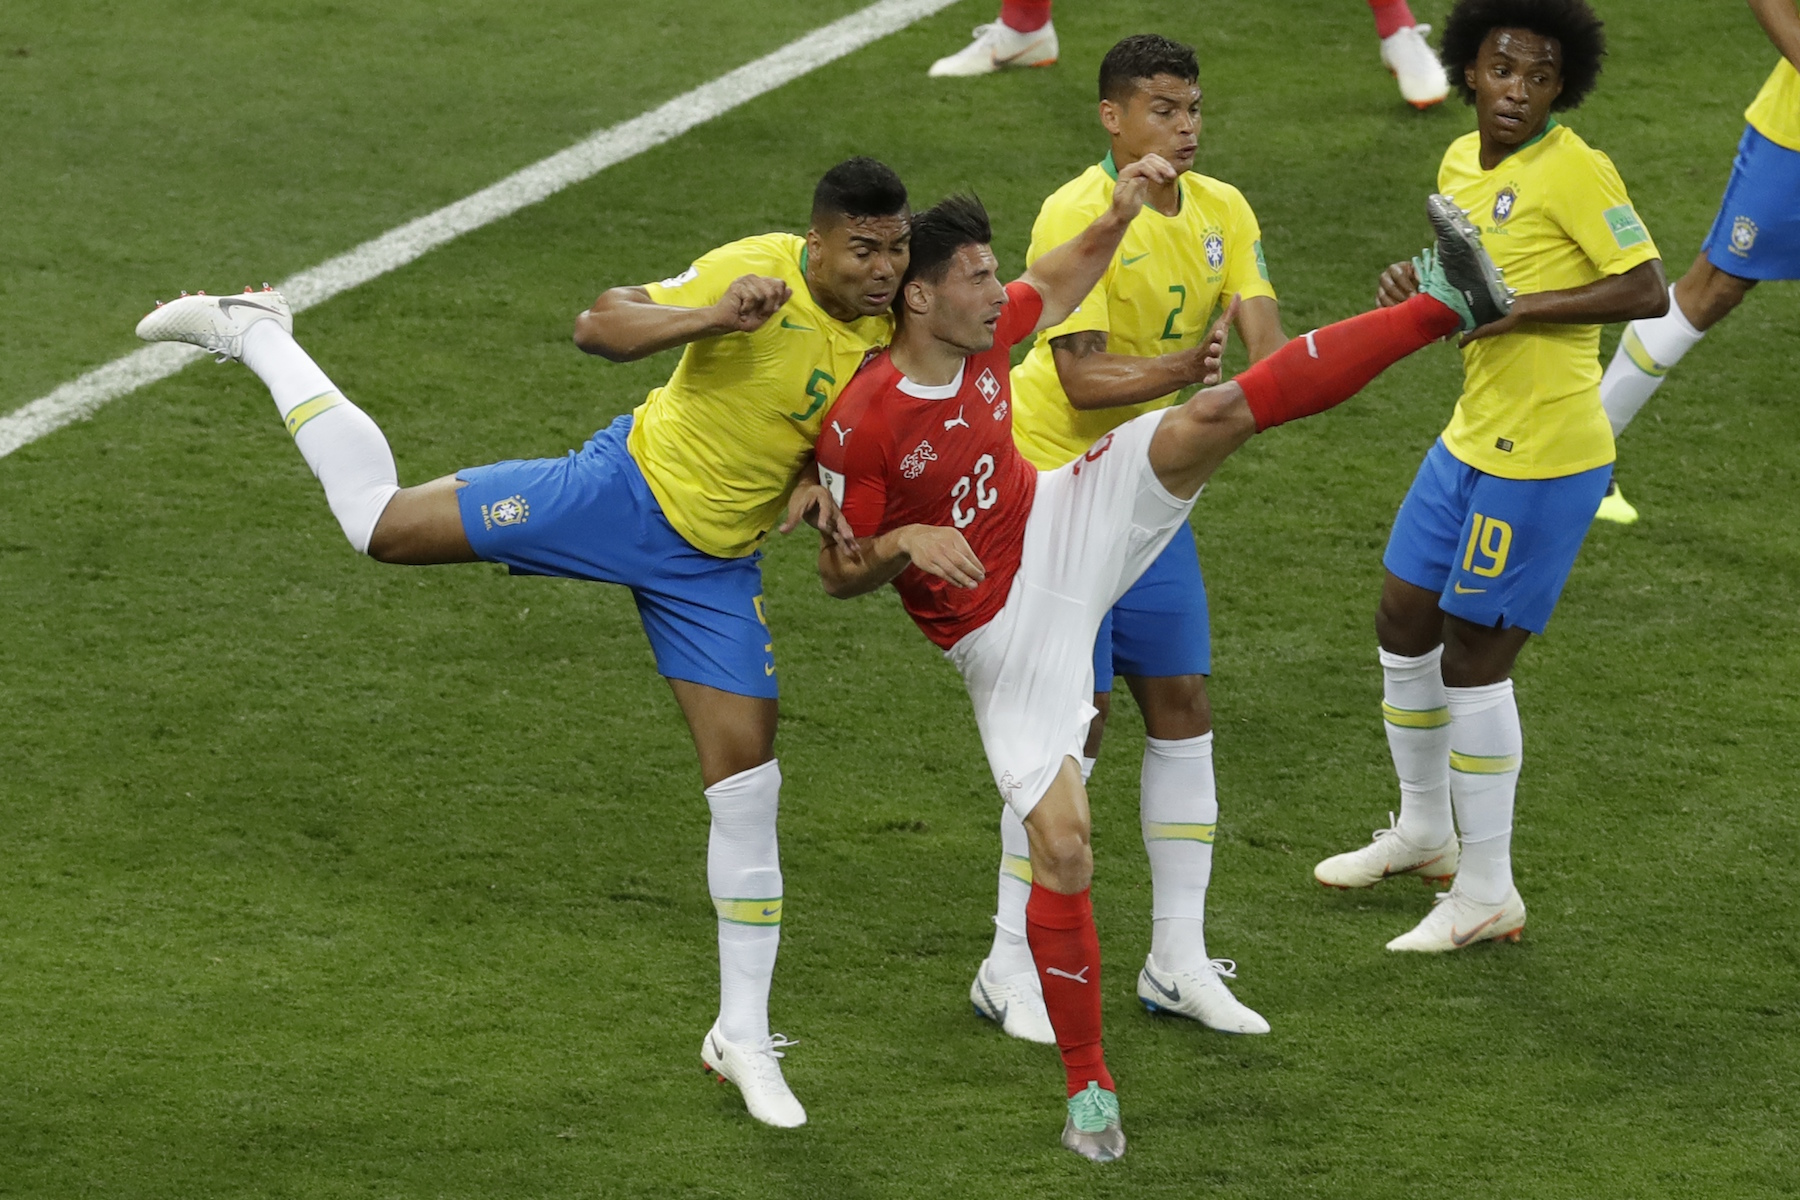 <div class='meta'><div class='origin-logo' data-origin='AP'></div><span class='caption-text' data-credit='AP Photo/Andrew Medichini'>Brazil's Casemiro, left, and Switzerland's Fabian Schaer collide during the group E match between Brazil and Switzerland at the 2018 soccer World Cup.</span></div>